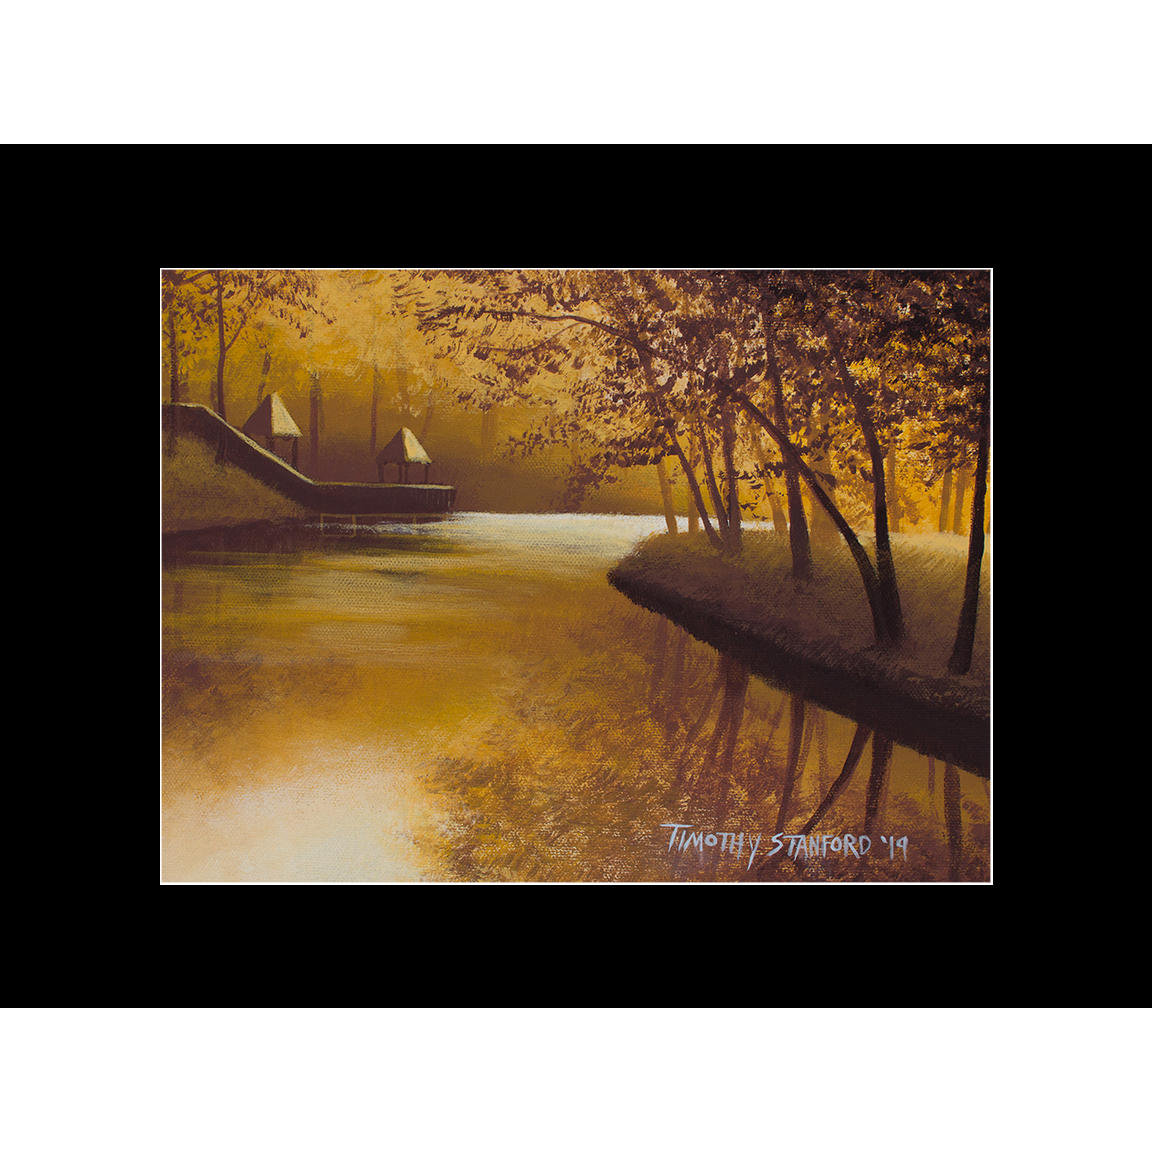 """Fine art matted print of Timothy Stanford's original acrylic painting """"Bending Light Study"""""""